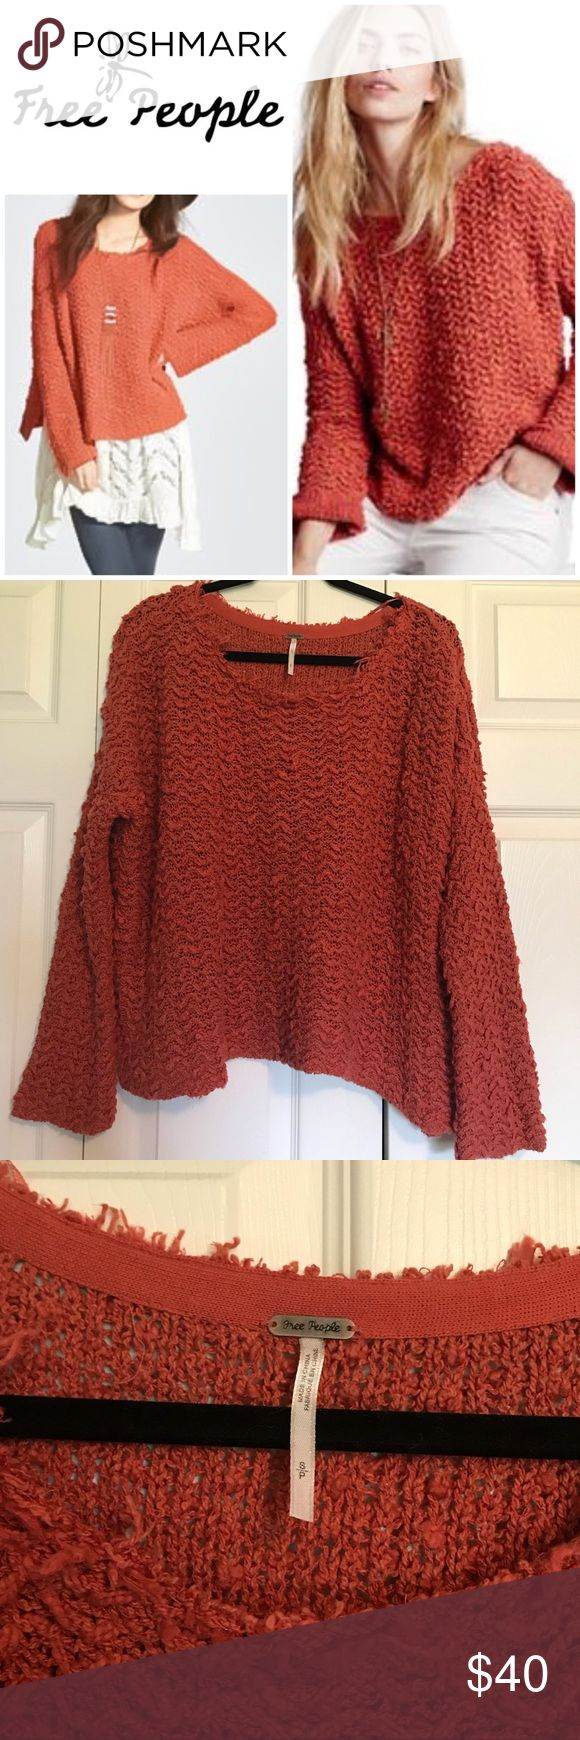 Free People Oversized Sweater Free People over sized orange sweater. Super soft and comfy! EUC. No pulls, holes or stains. Worn and washed with care, always laid flat to dry. Make an offer or bundle for 10% off! Free People Sweaters Crew & Scoop Necks